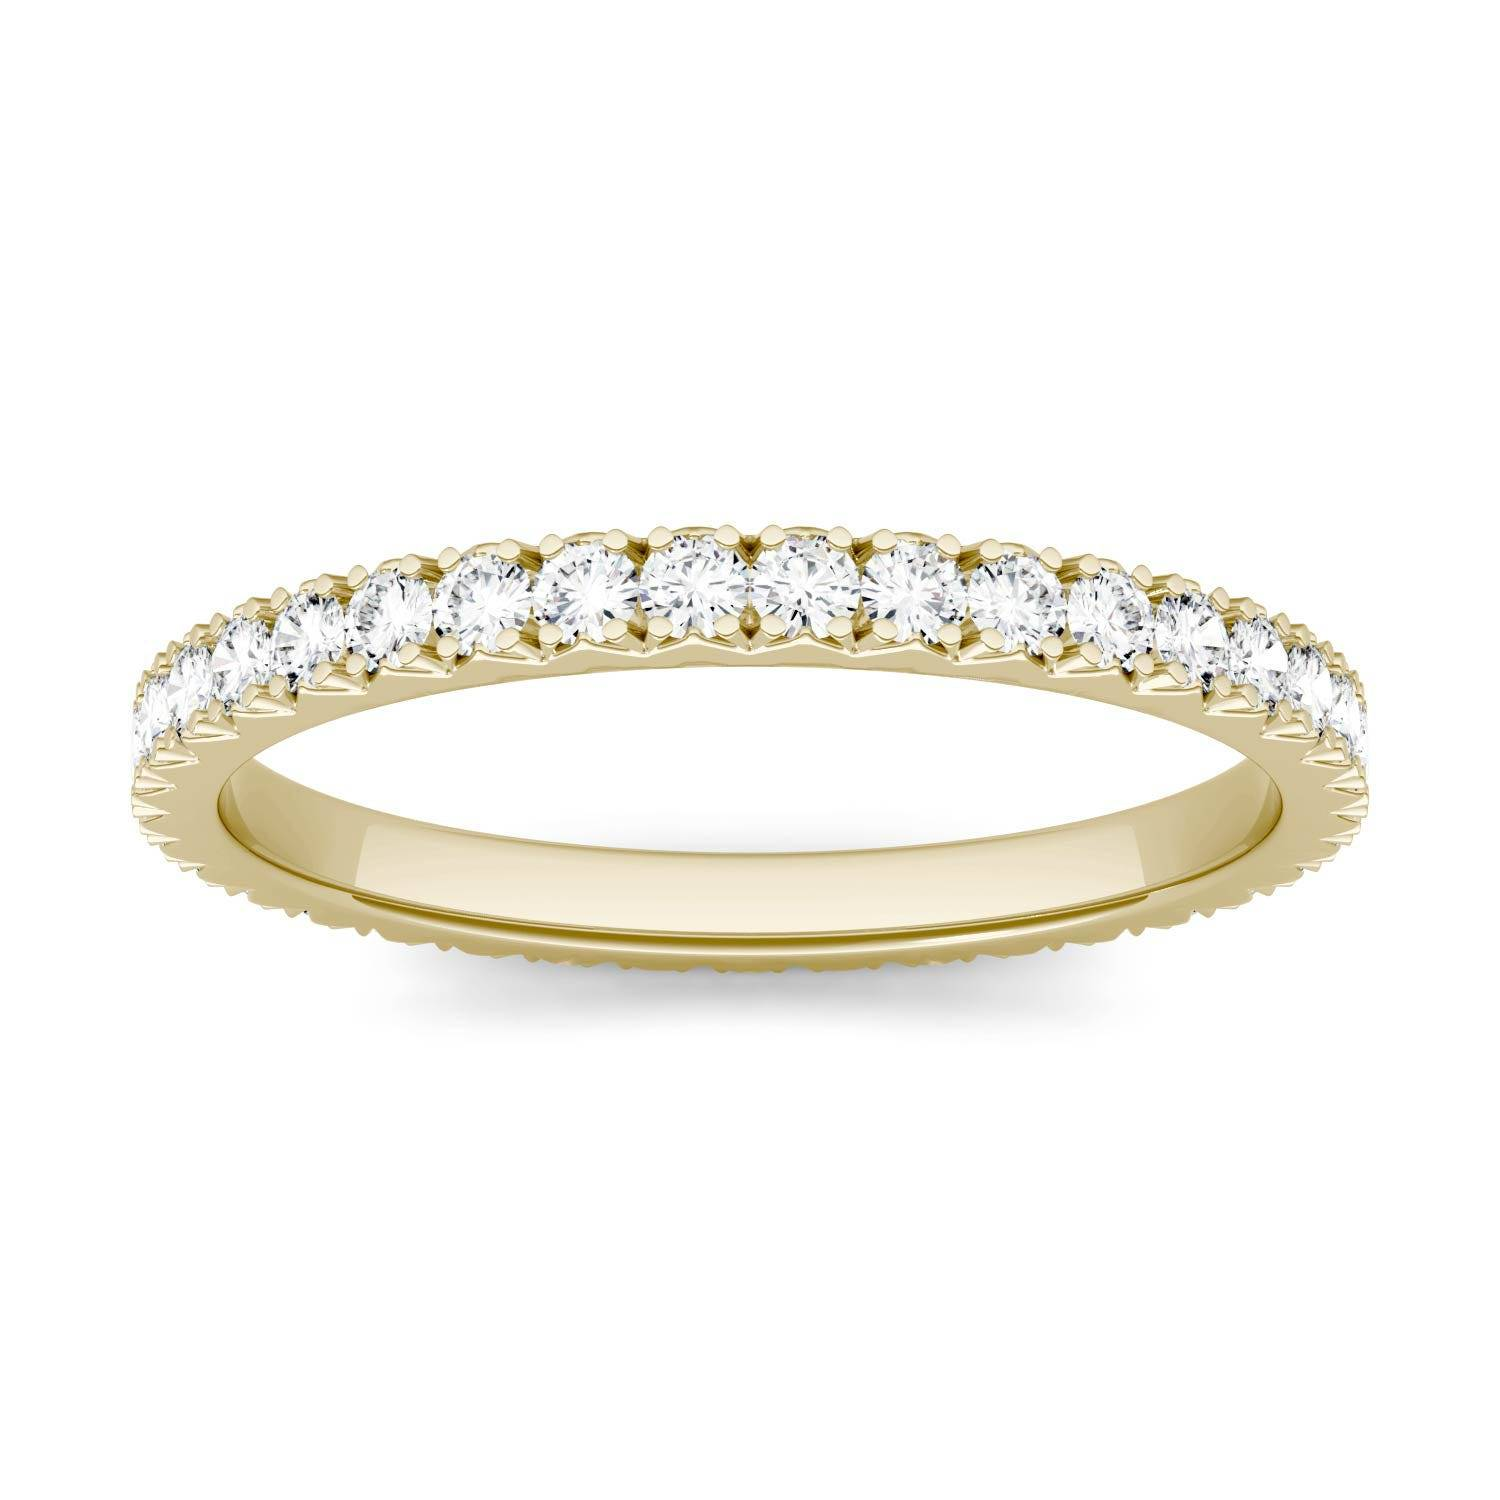 Charles & Colvard Eternity Prong Set Band Wedding Ring in 14K Yellow Gold, Size: 8, 0.50CTW Round Forever One Moissanite Accent Stones Charles & Colvard  - Yellow Gold - Size: 8